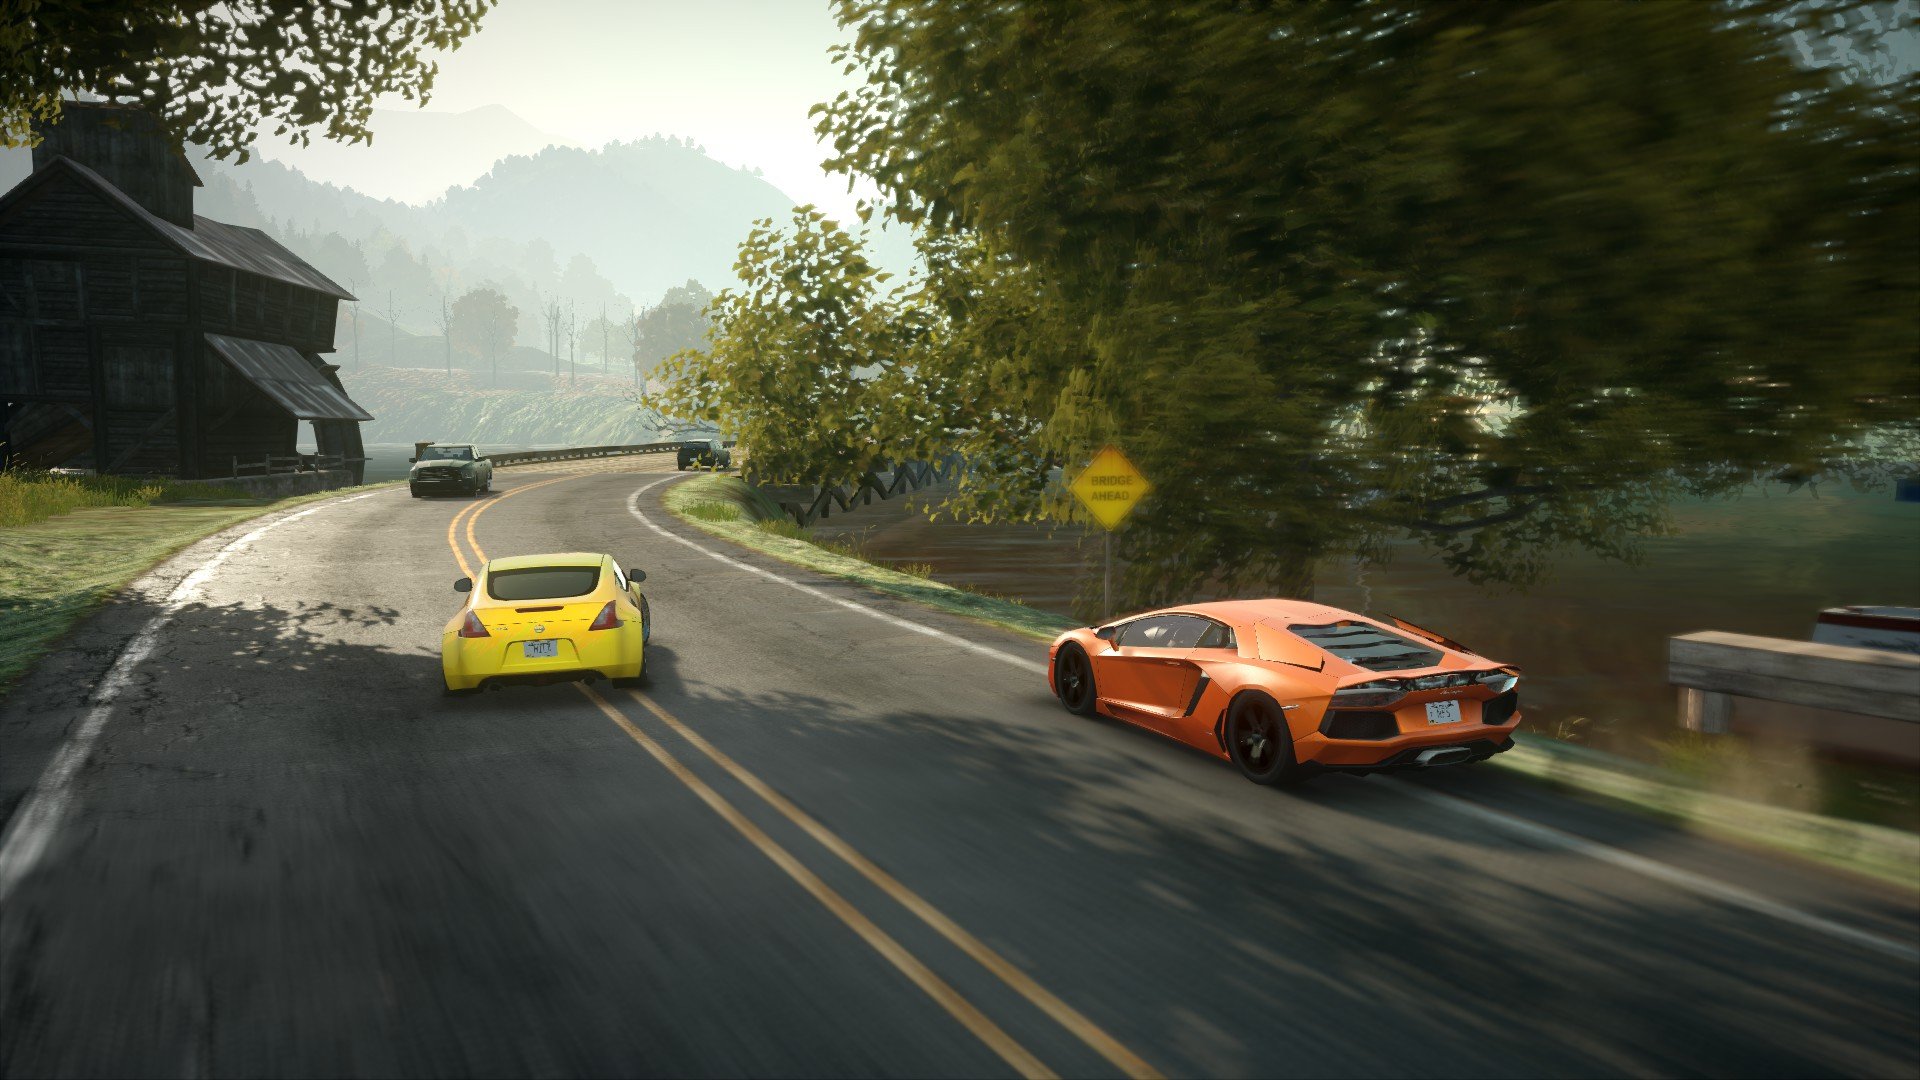 Bugatti veyronwide need for speed road back of